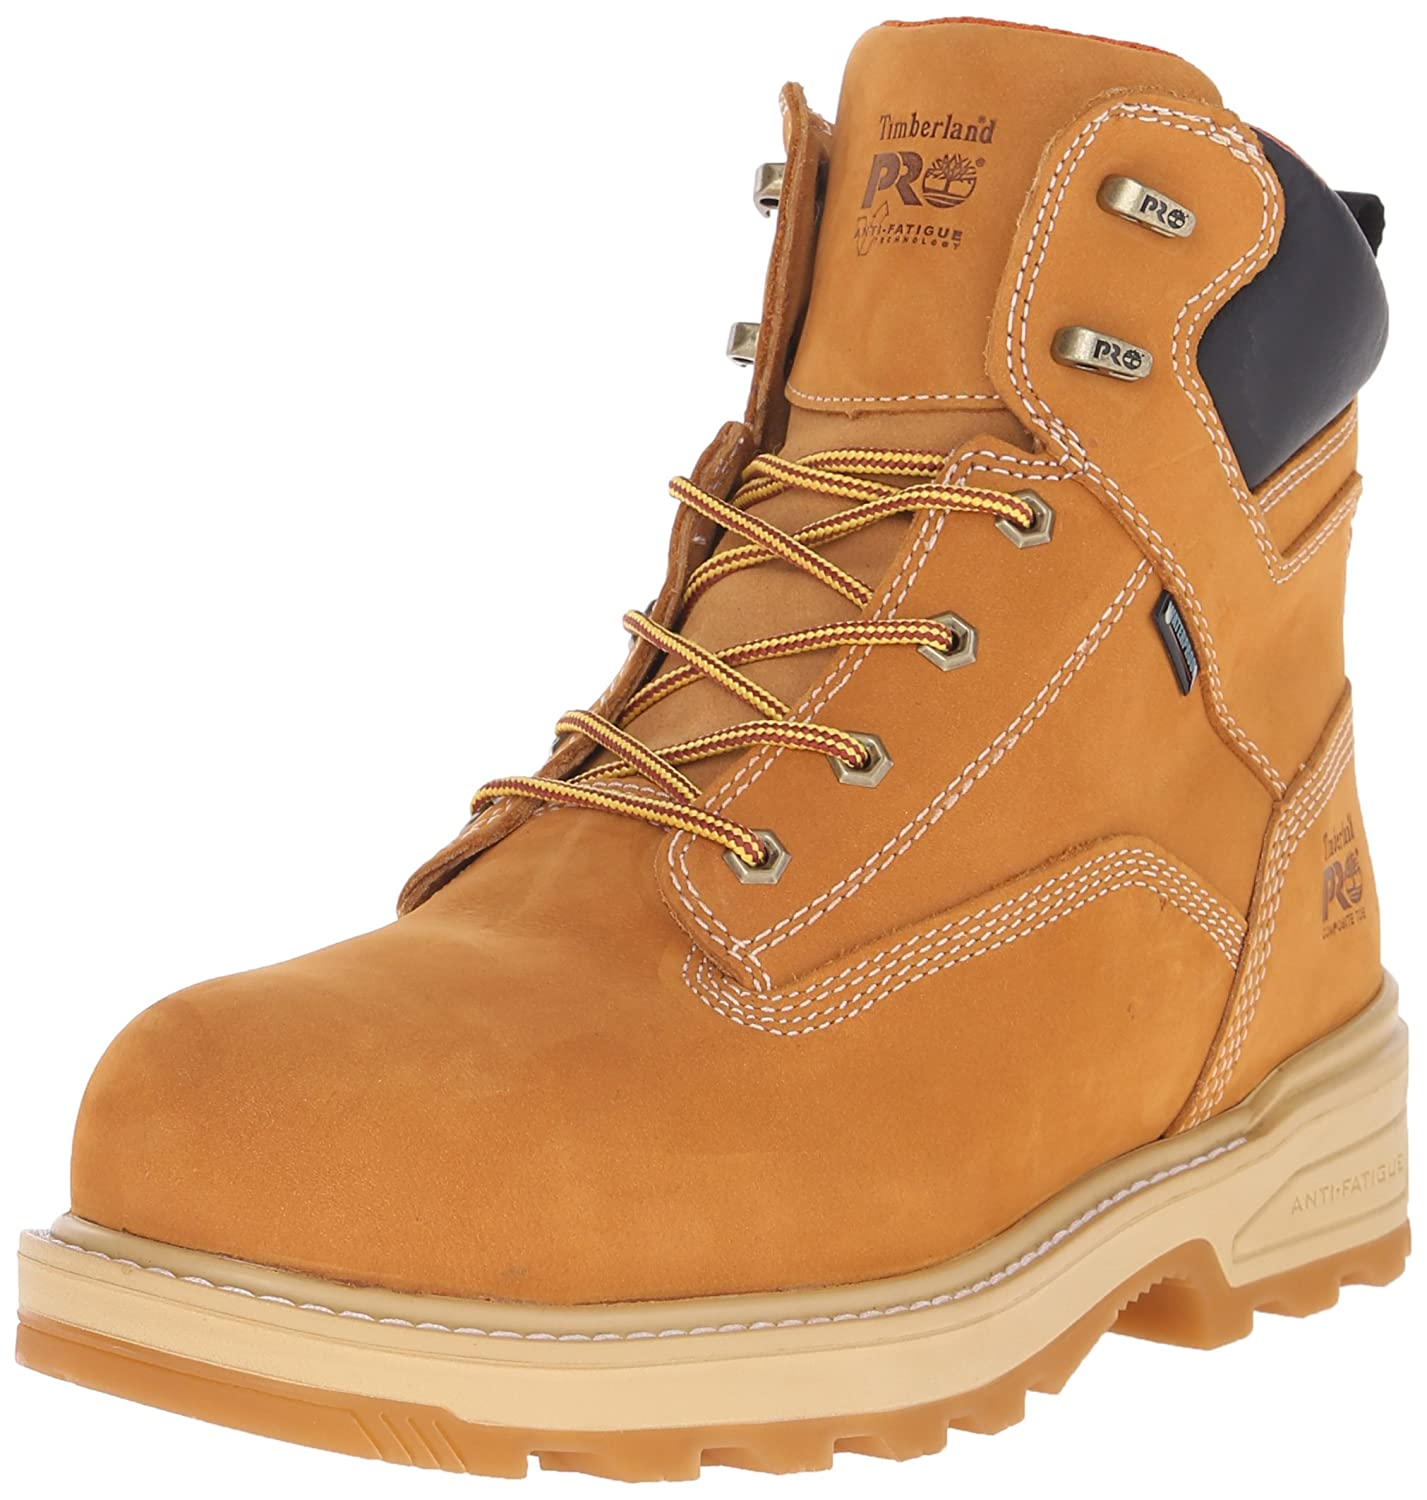 Timberland PRO メンズ B00SWVQ7UG 10 D(M) US|Wheat Tumbled Full Grain Leather Wheat Tumbled Full Grain Leather 10 D(M) US